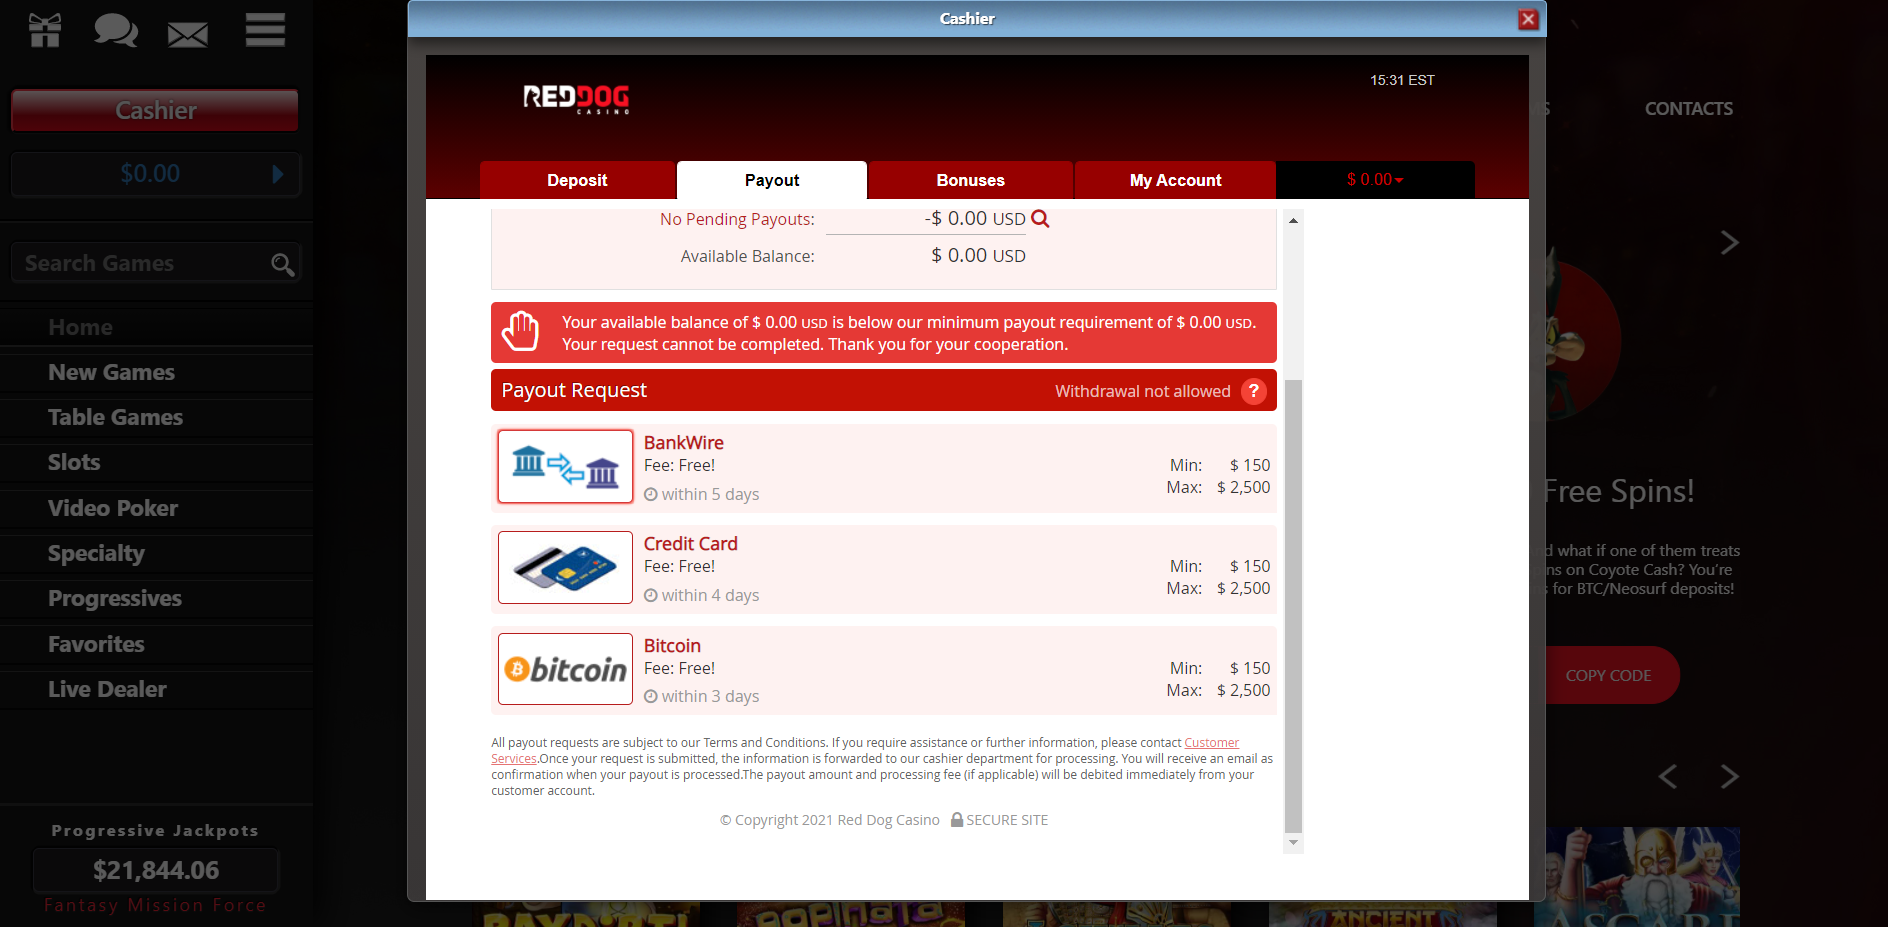 Red Dog Casino Payout